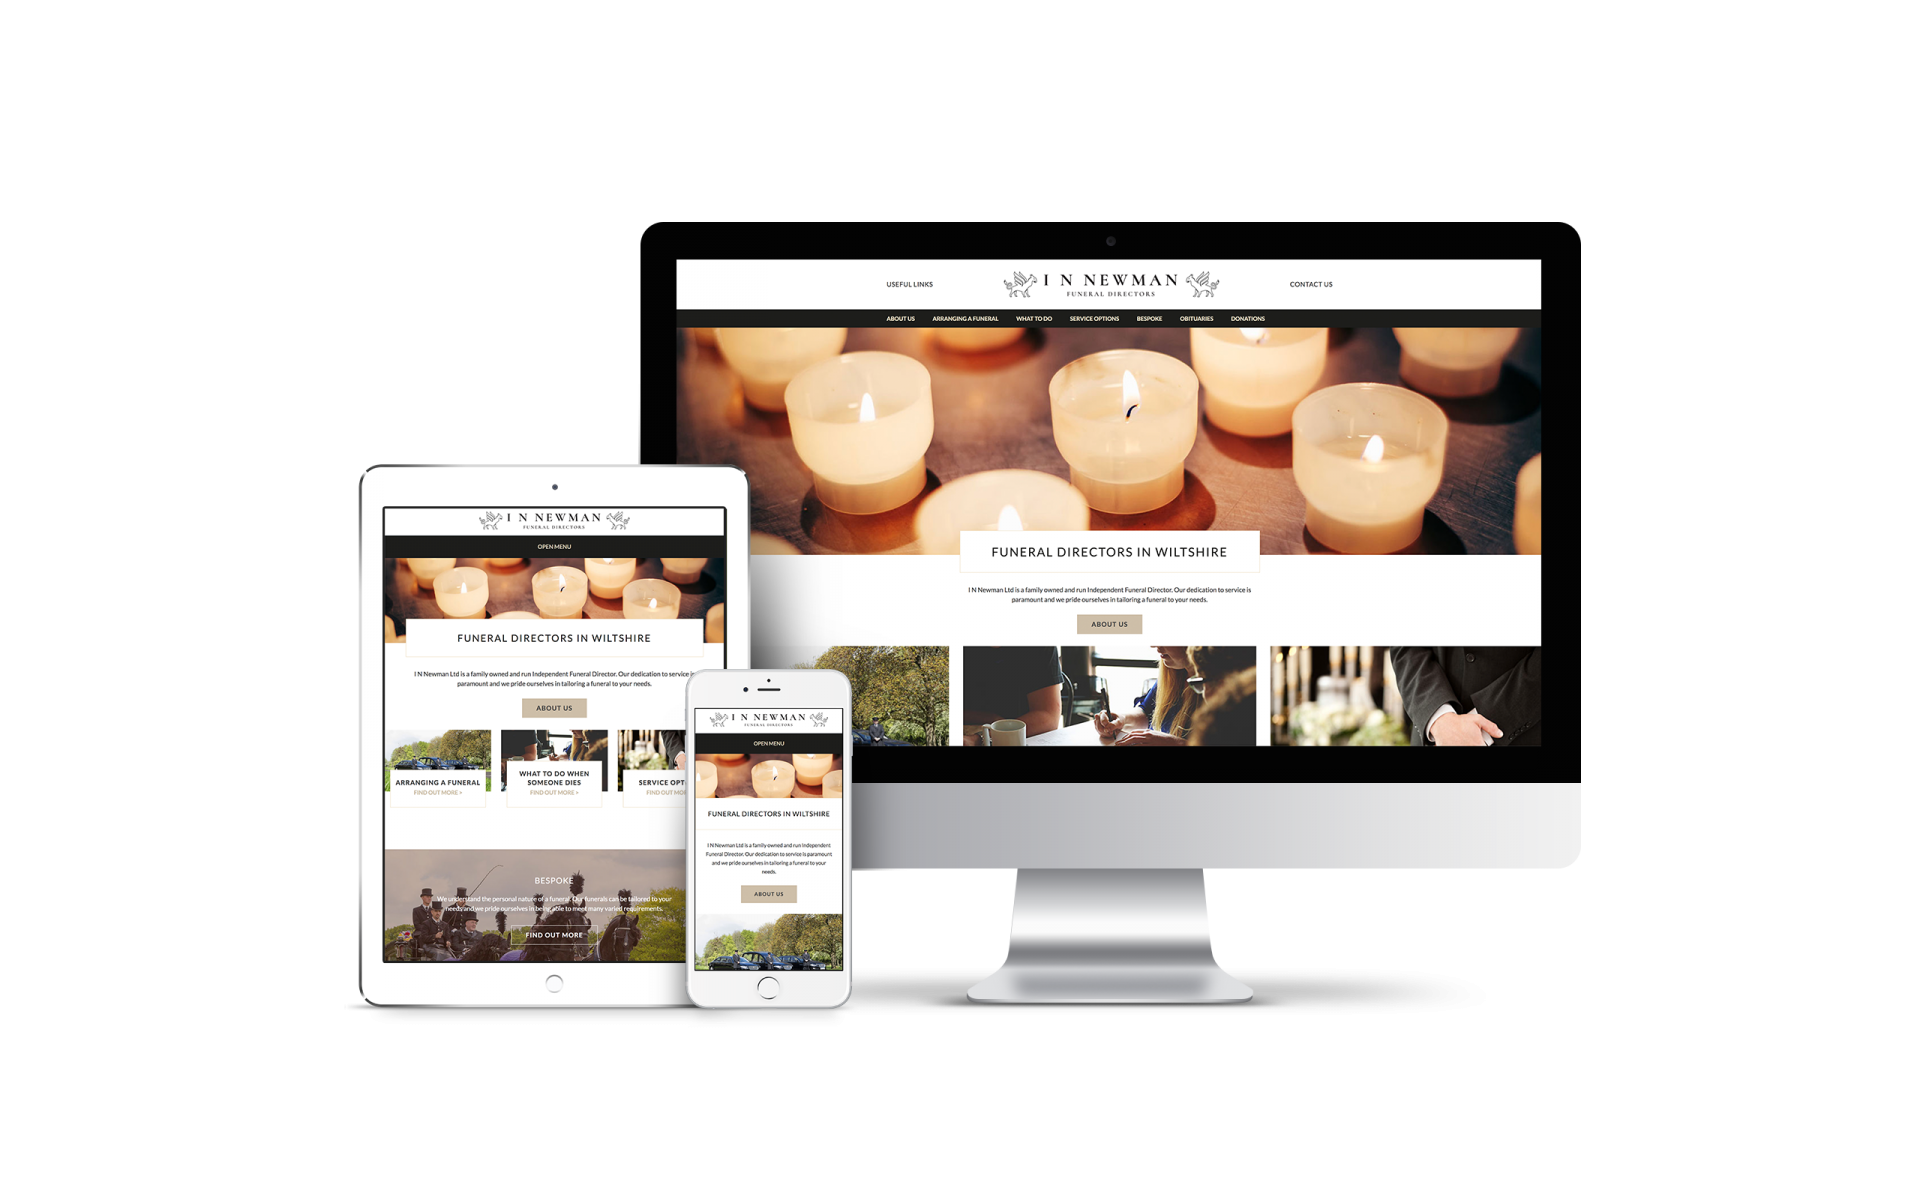 Website Design for IN Newman, Funeral Directors